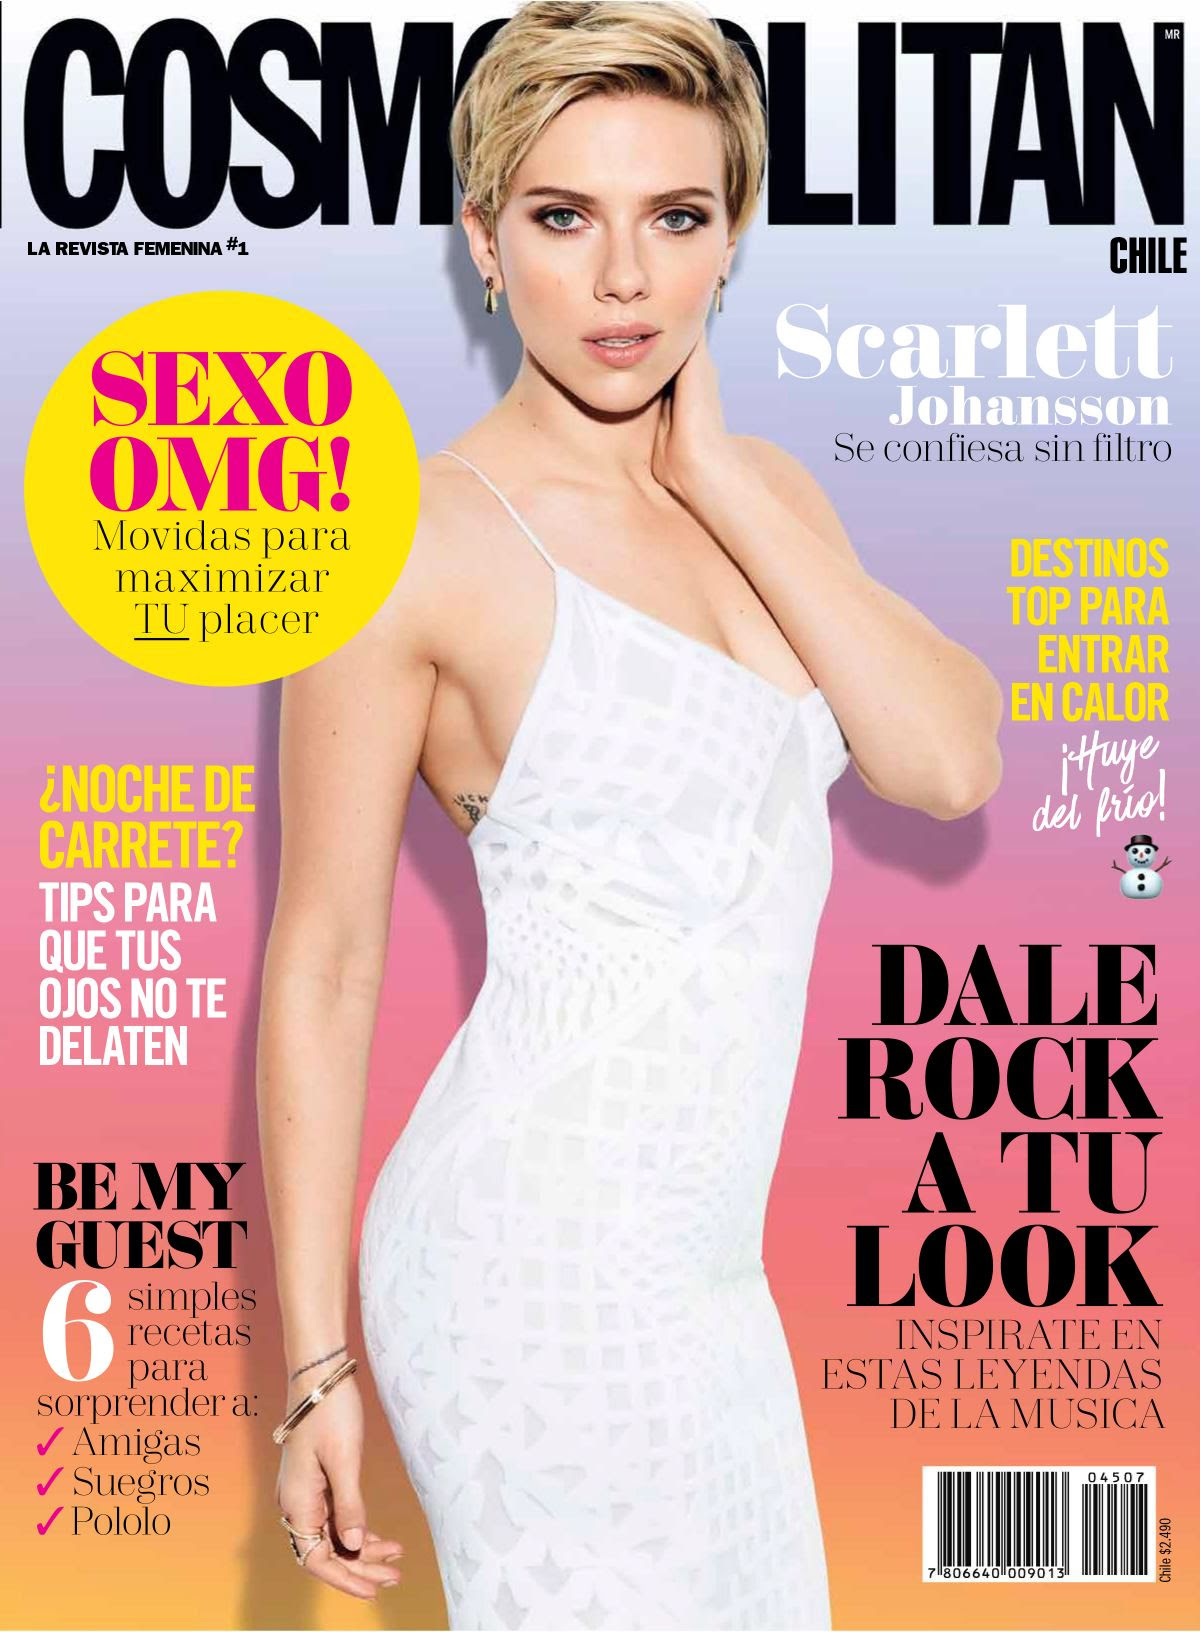 SCARLETT JOHANSSON in Cosmopolitan Magazine, Chile July 2017